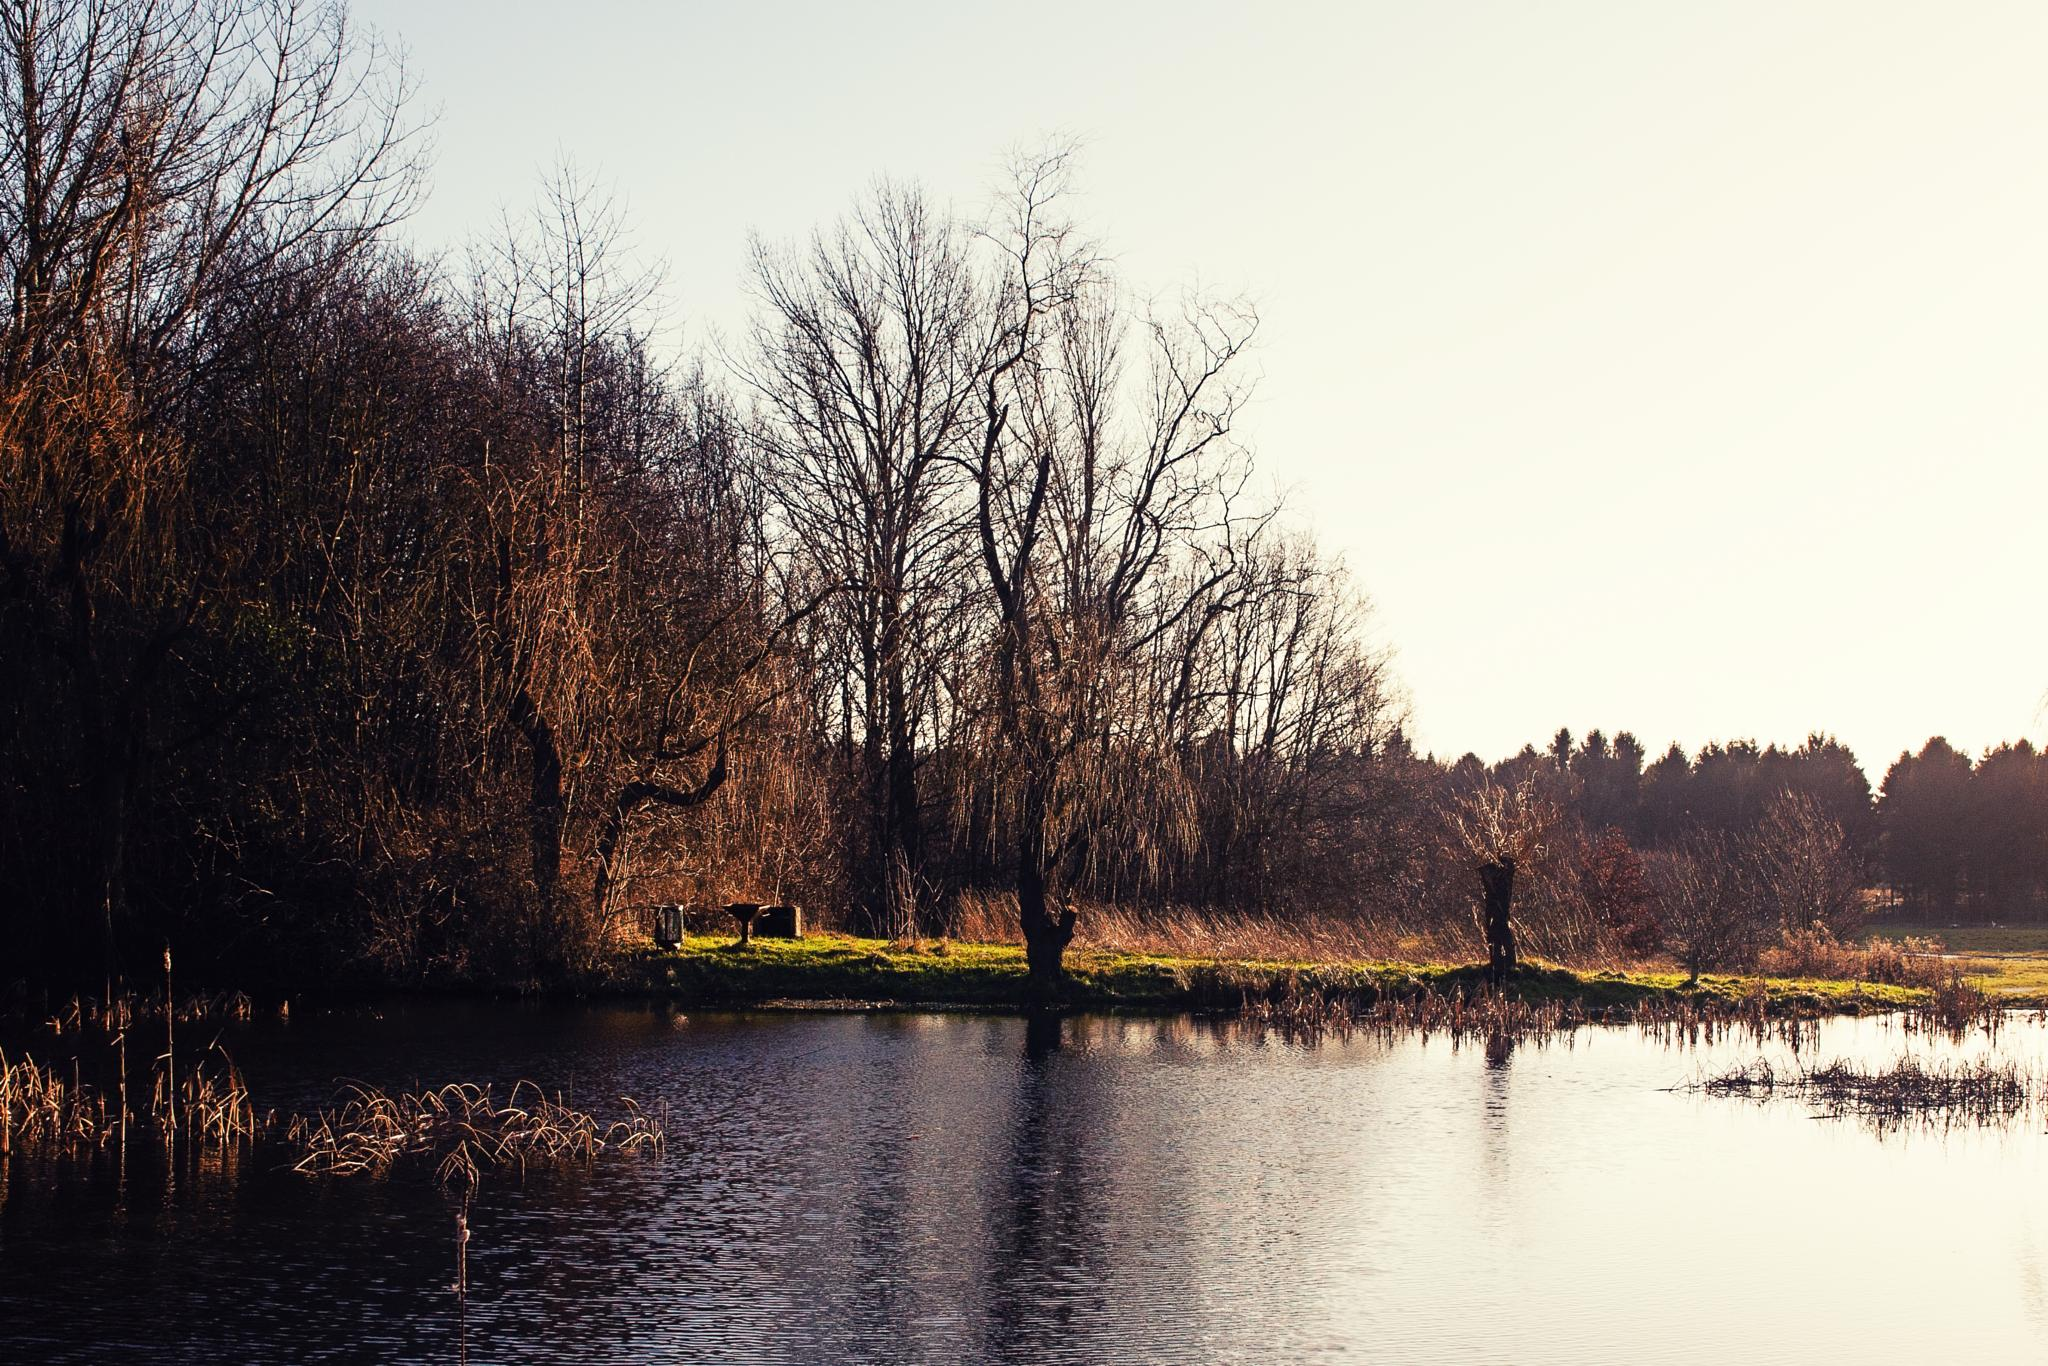 by the lake by weaksyntax